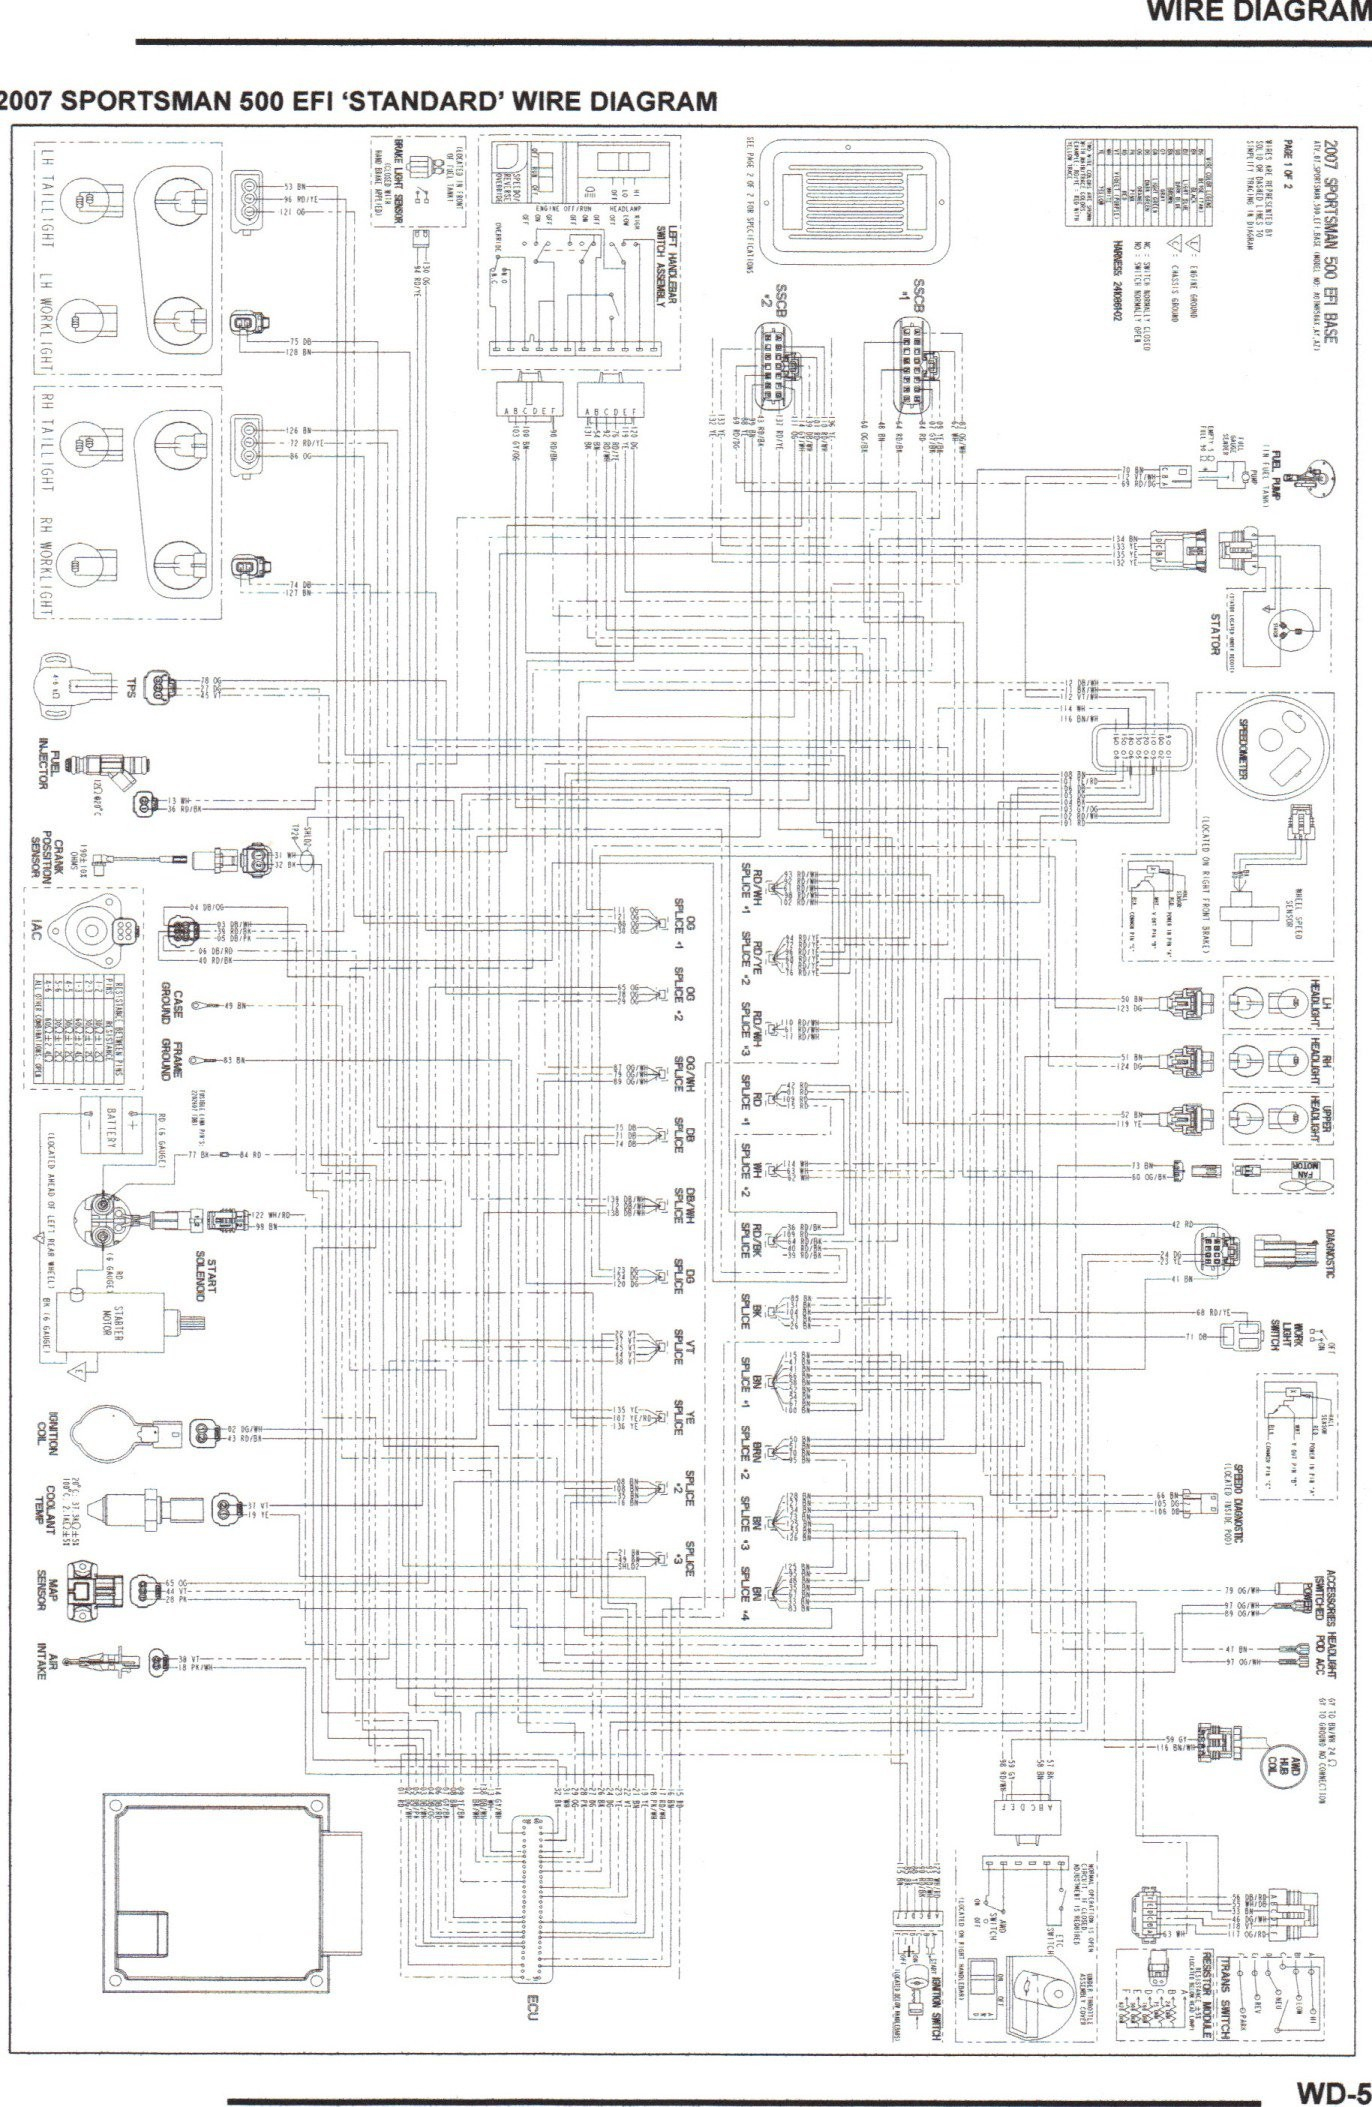 Wiring Schematic For A 2002 Polaris 700 | Wiring Diagram on